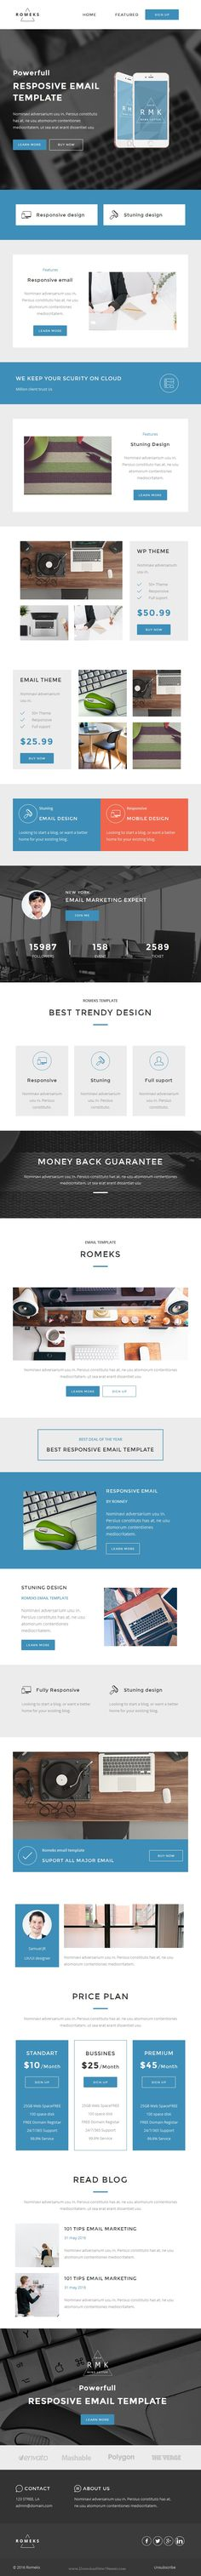 Romeks Responsive email template designed for multipurpose bussines to gain new clients or customers. Newsletter #emailtemplate Download Now!